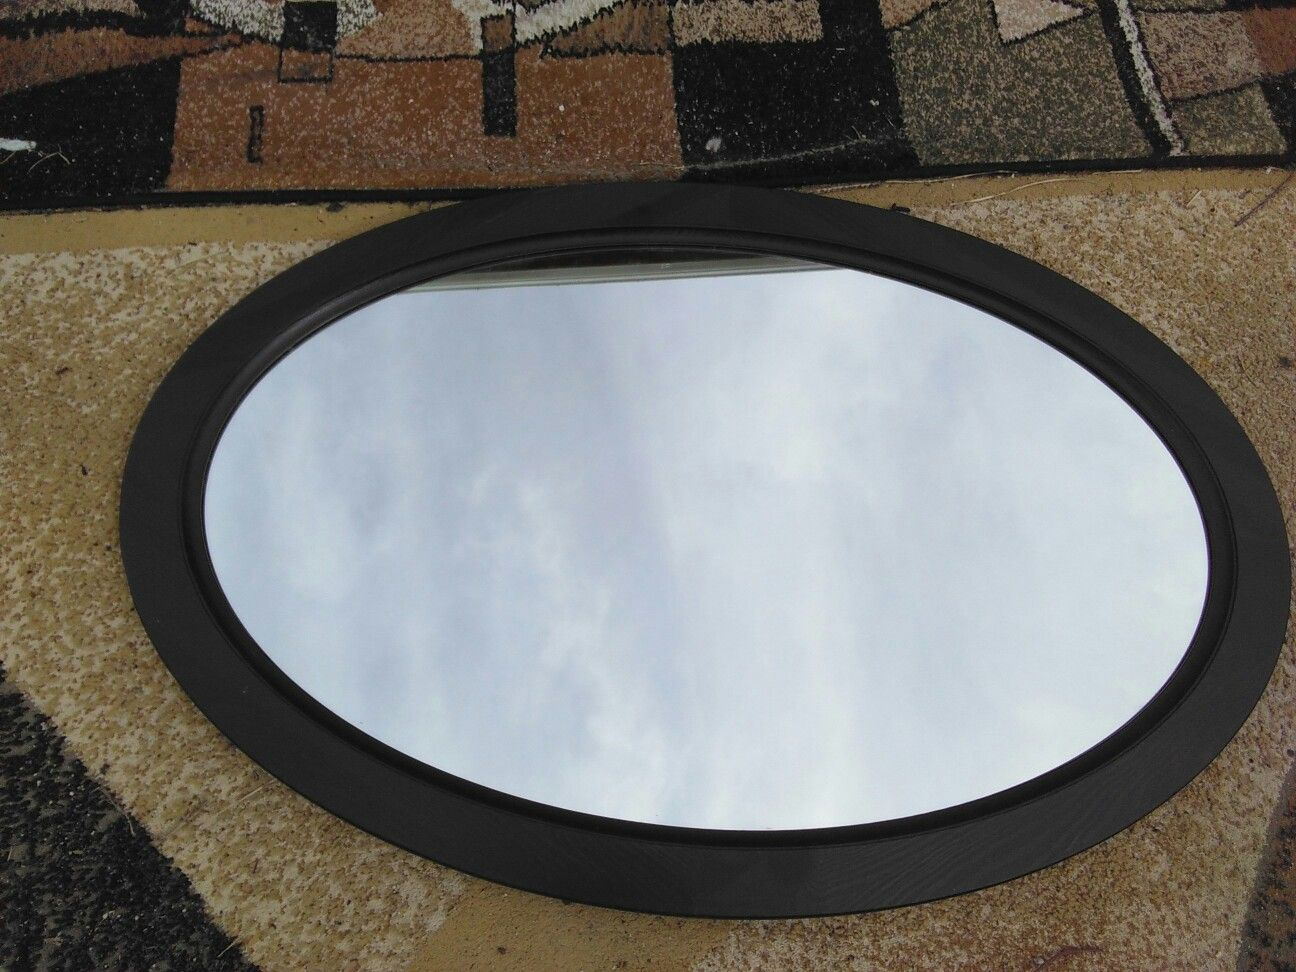 Mirror in Oval Frame.